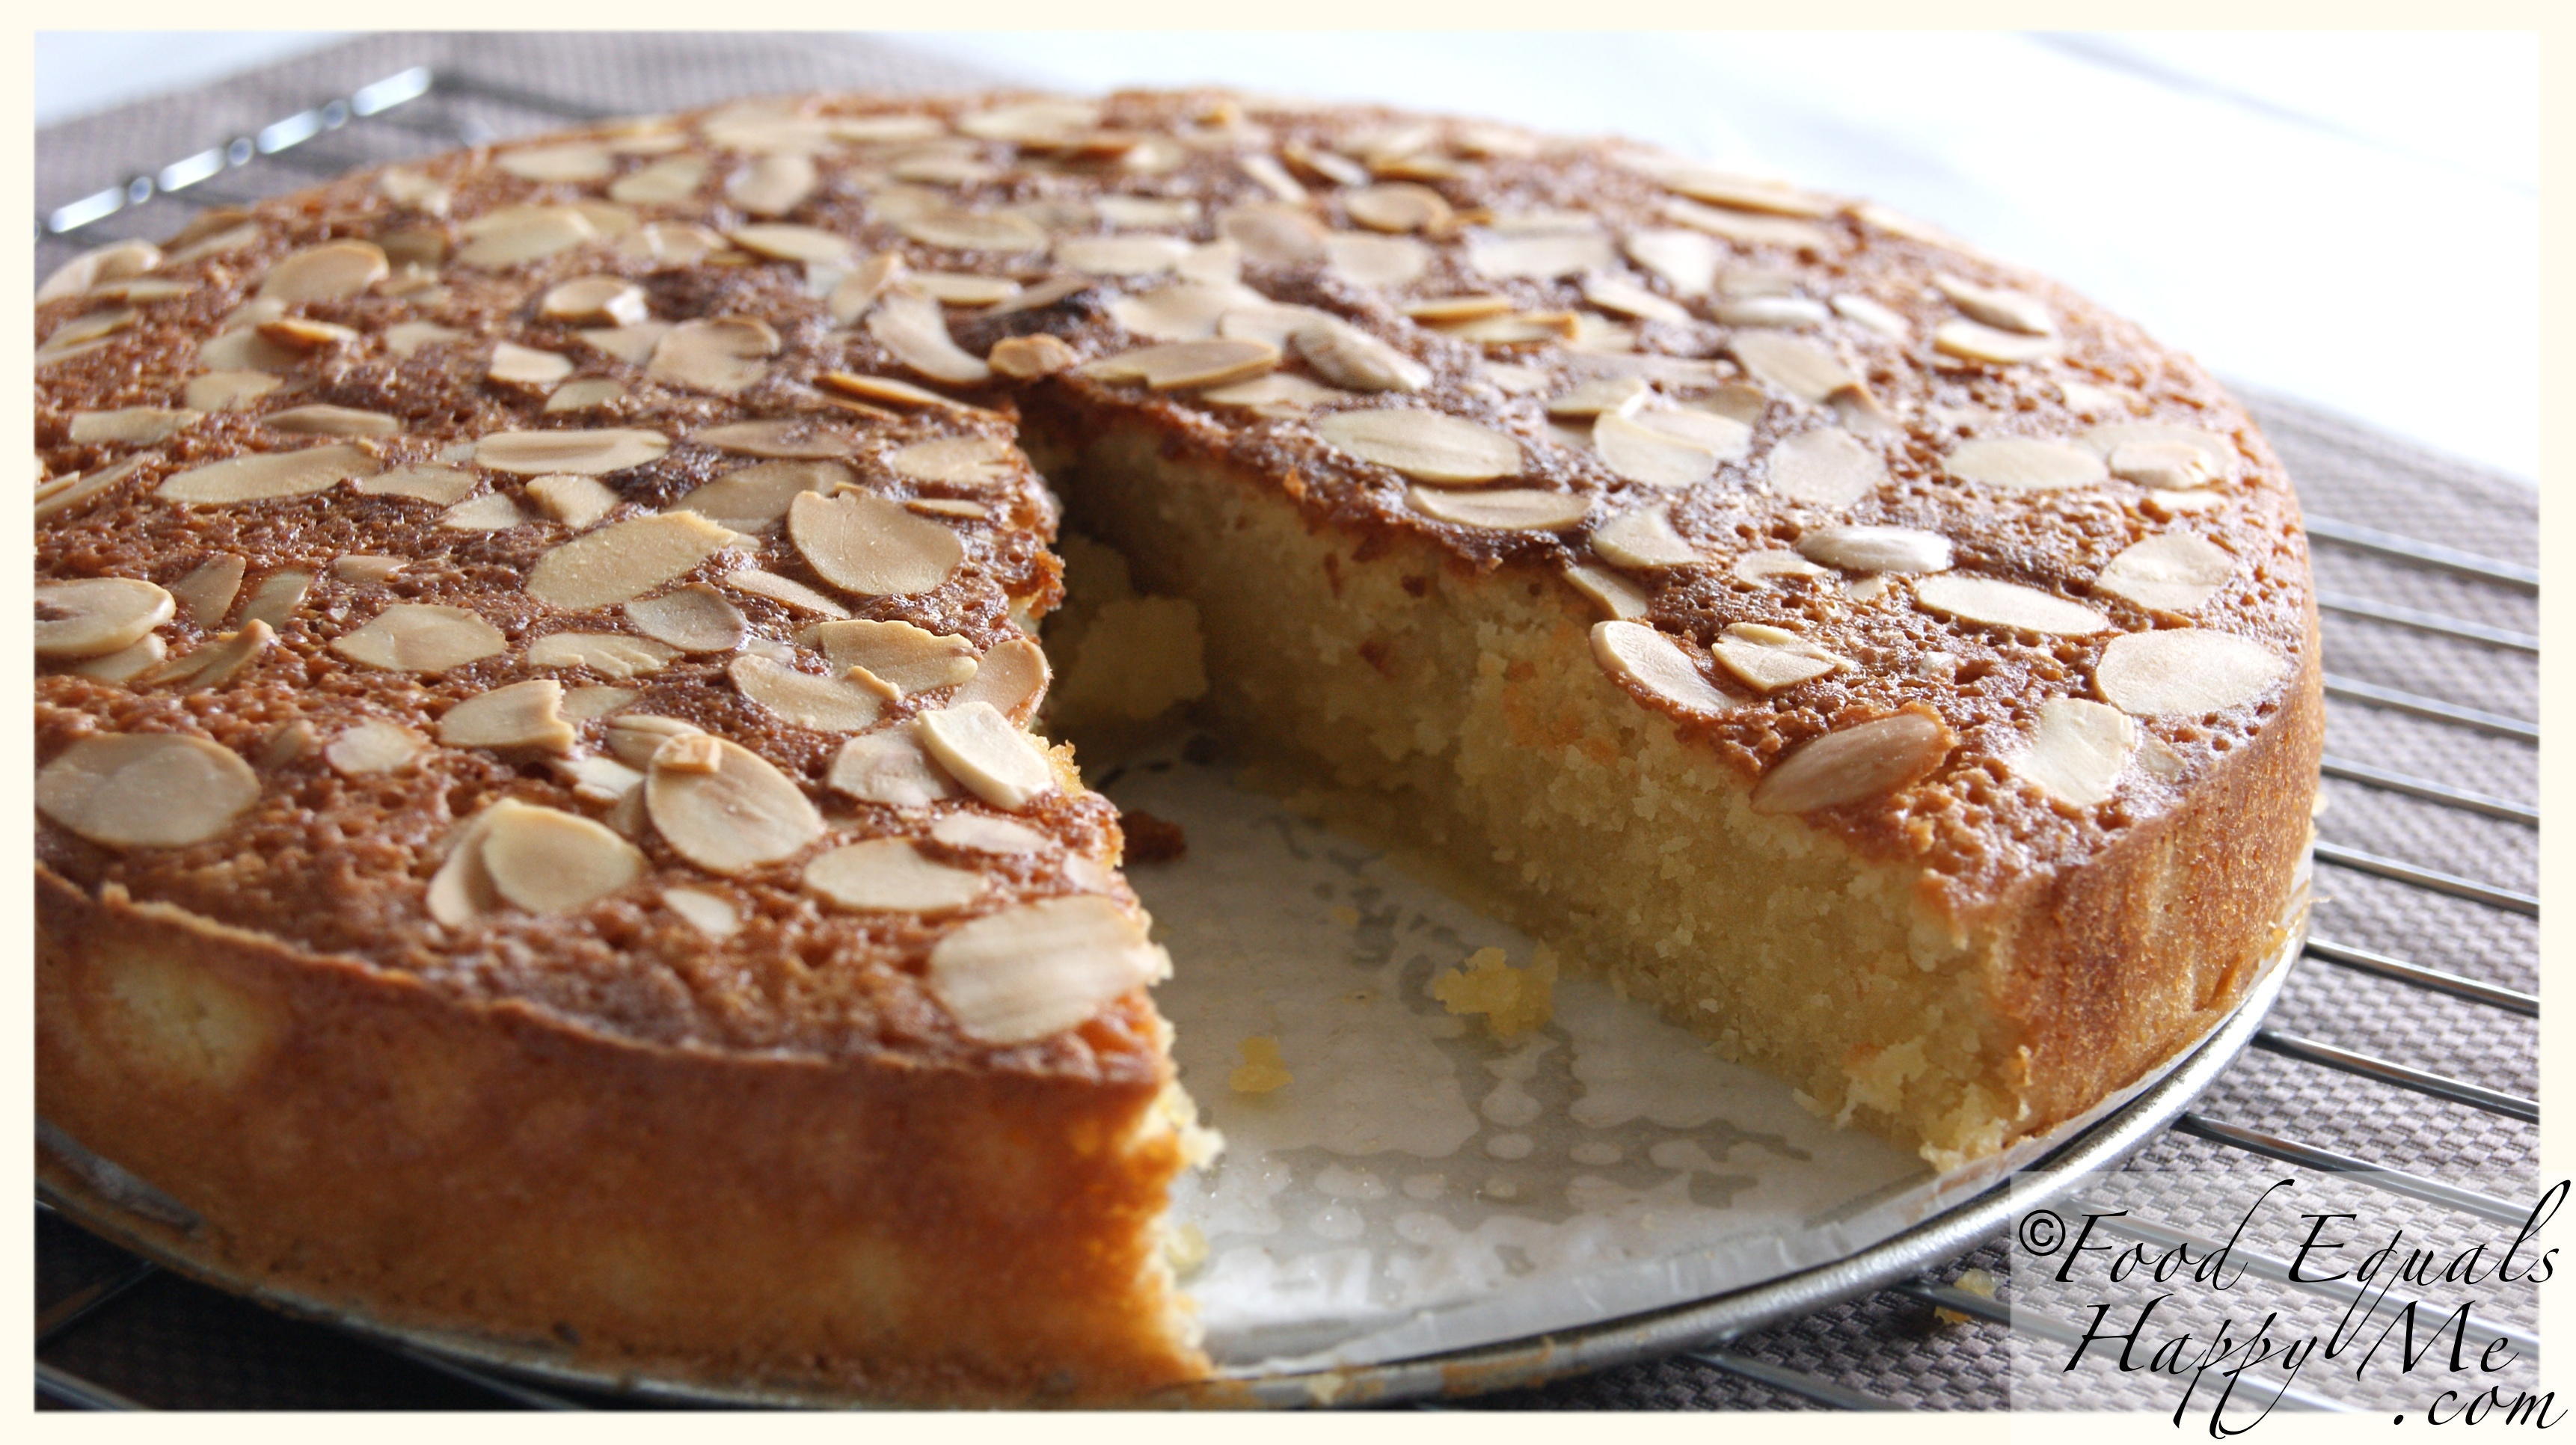 Almond and Coconut Cake | Food Equals Happy Me